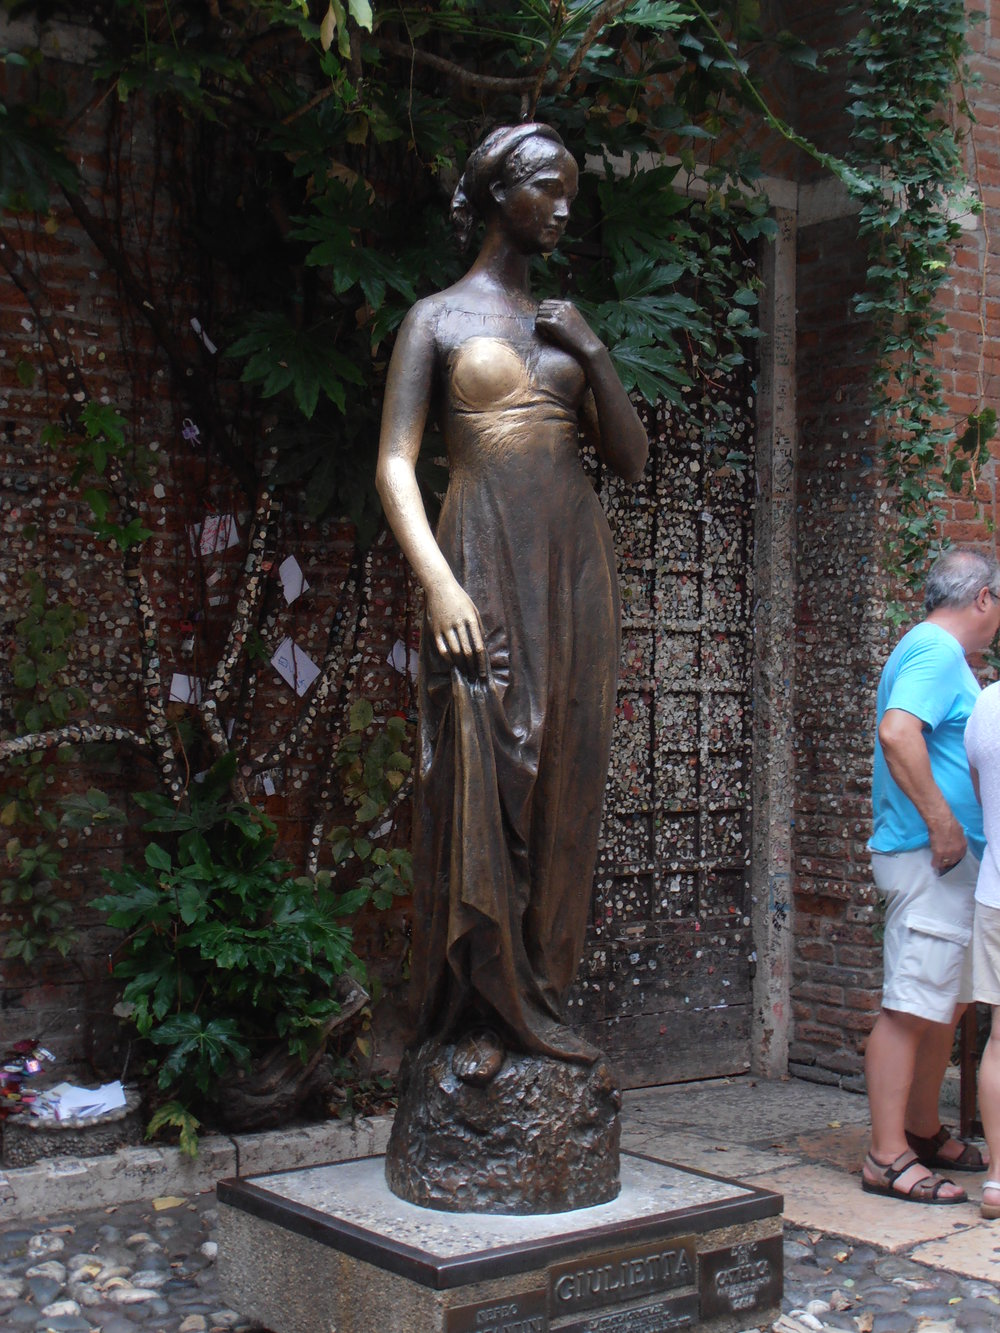 The Juliet statue